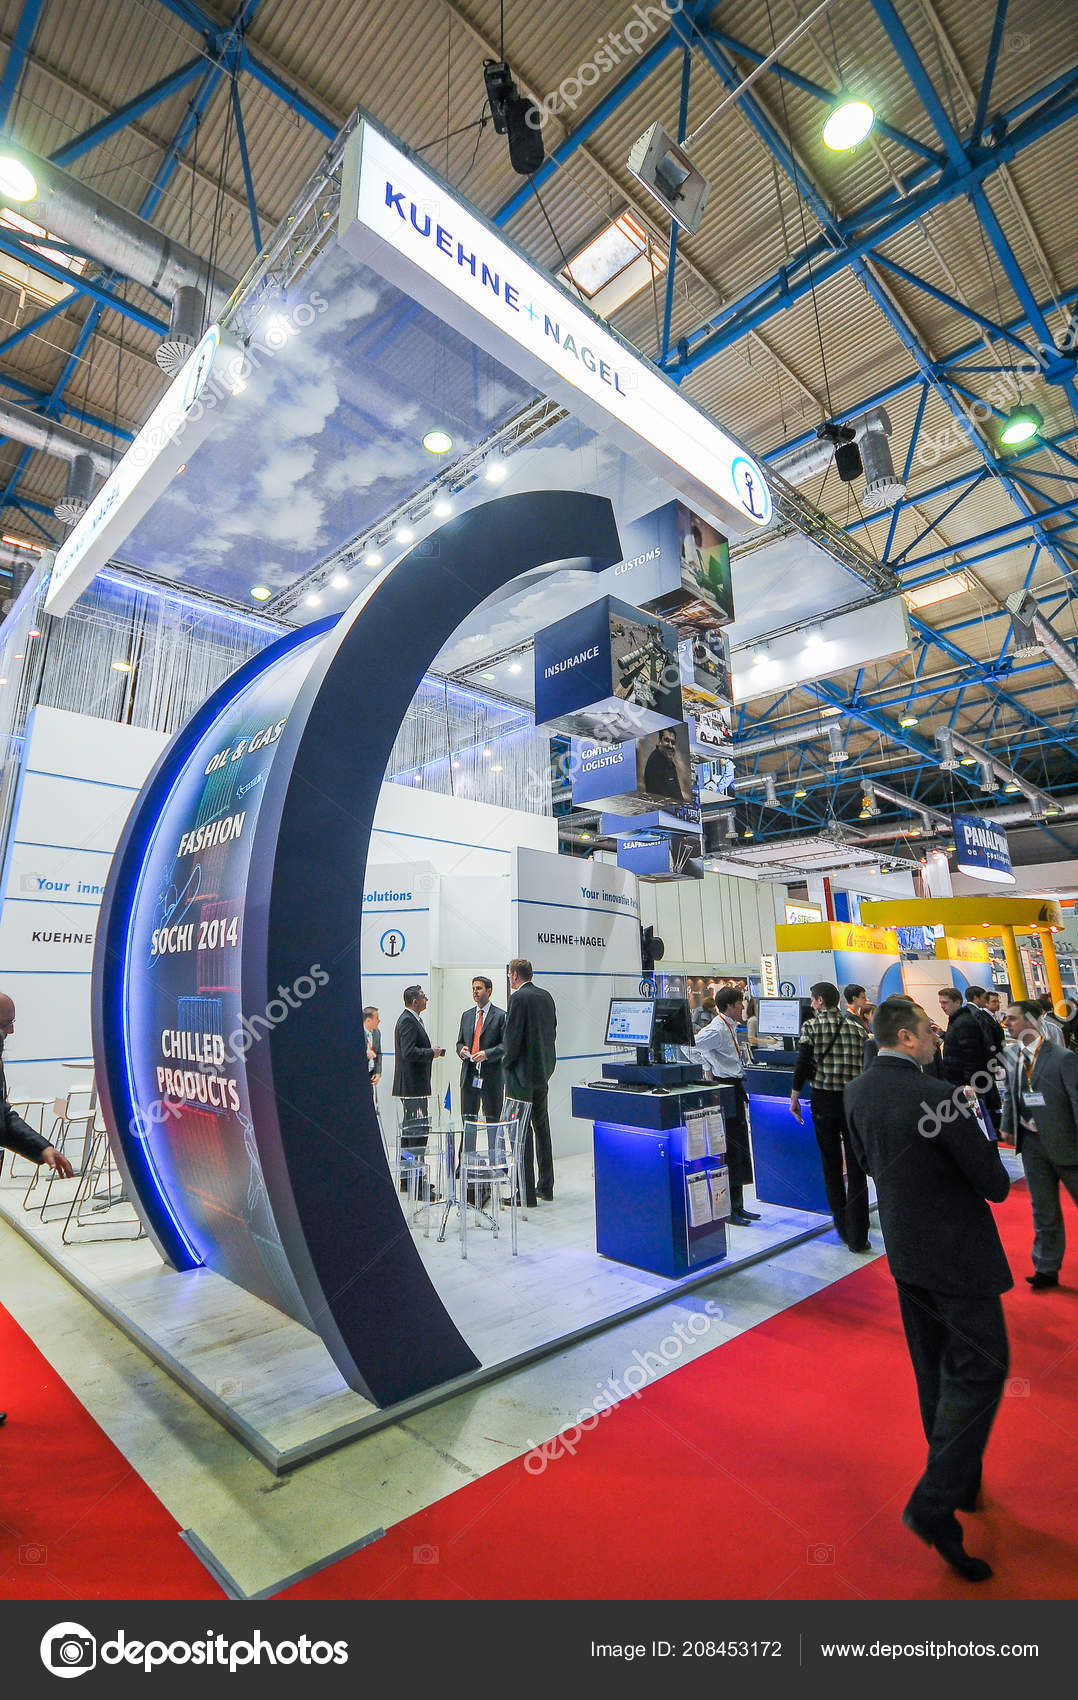 Exhibition Booth Photography : Kuehne nagel booth transrussia 2010 transport exhibition moscow